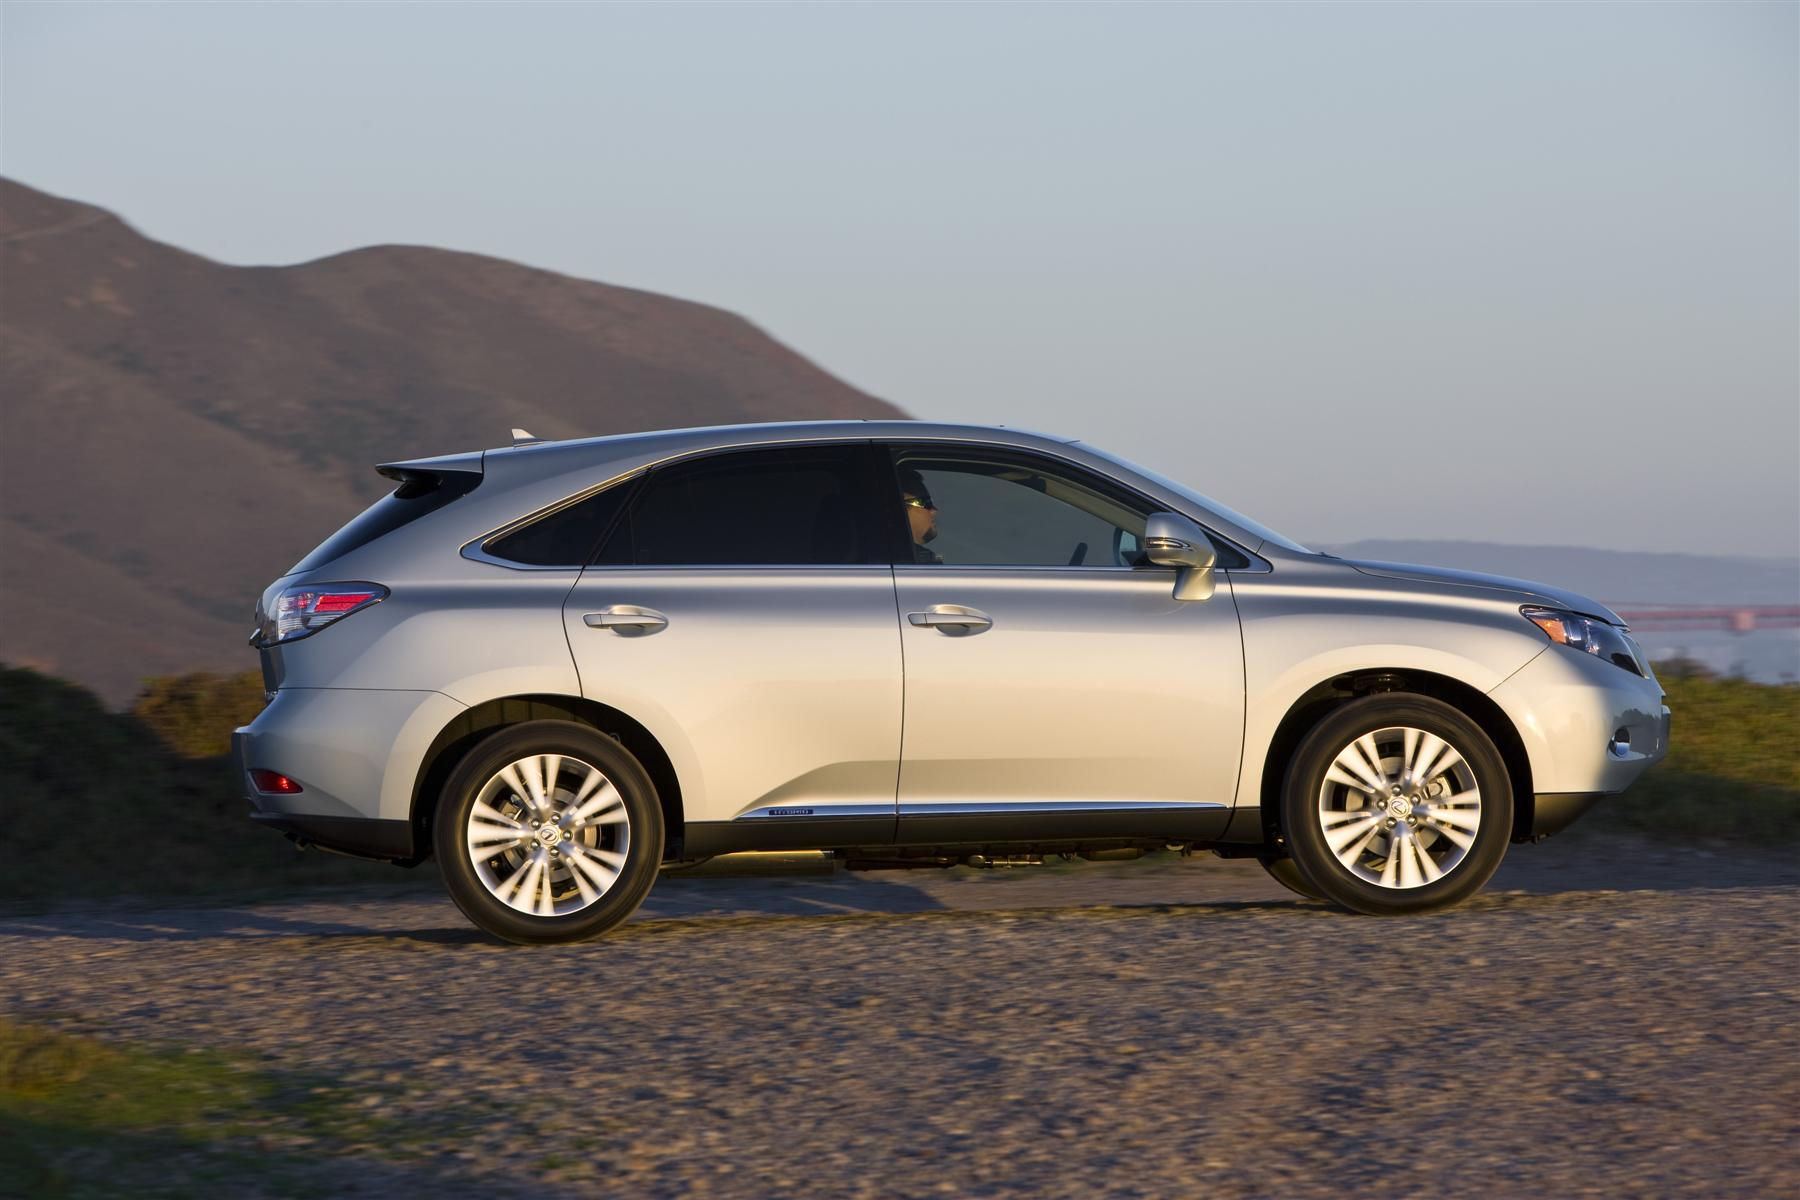 Exploit Nature in Clean Hybrid Lexus SUV Get f the Road